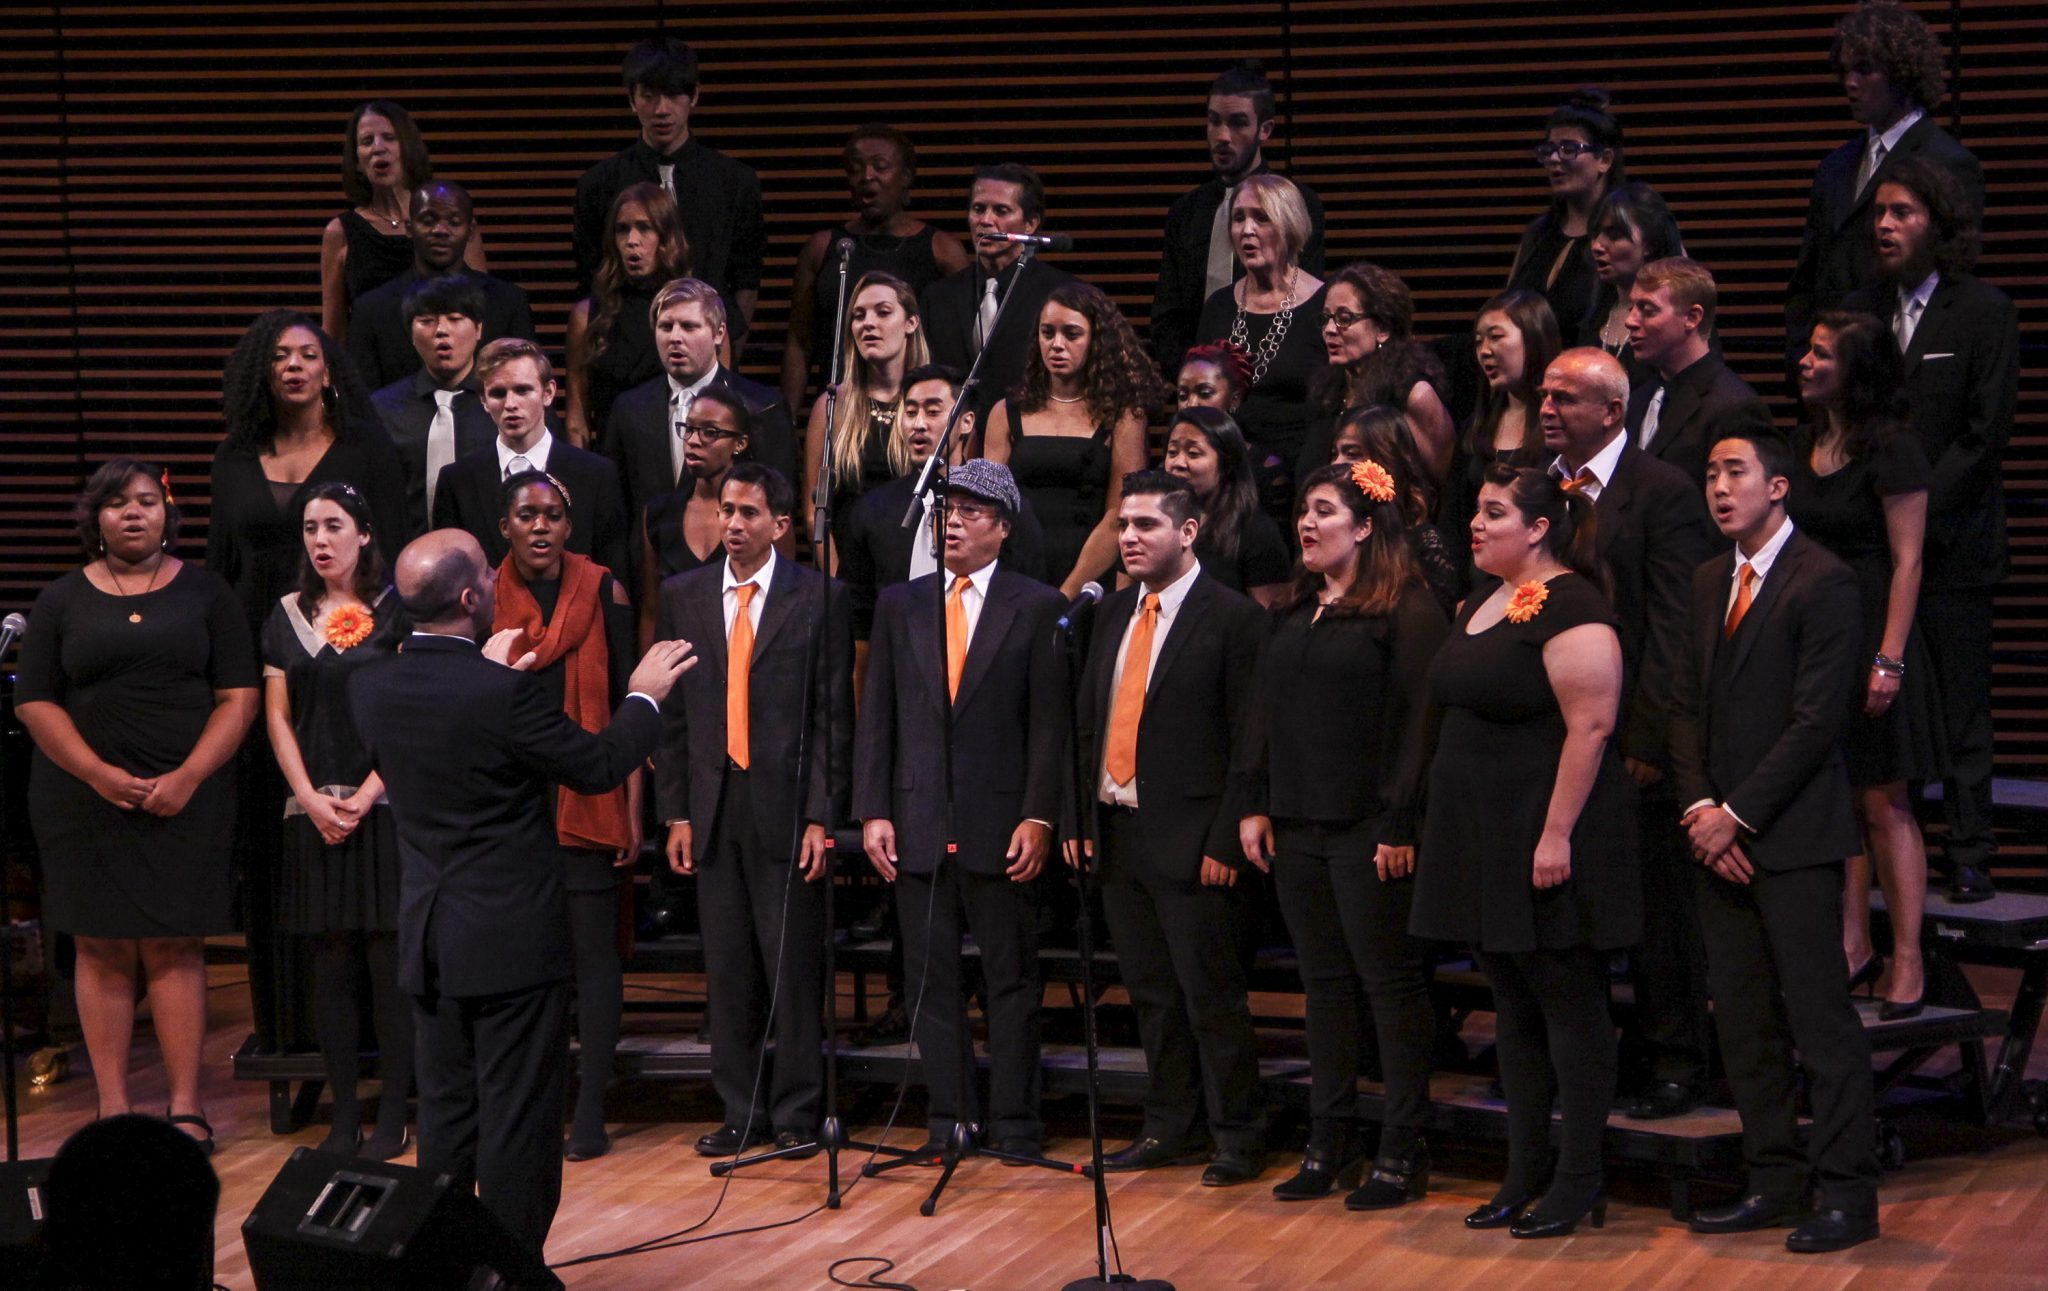 Daniel Valencia/Courier Lancer Jazz Choir performed alonged with Santa Monica City College Jazz Choir, directed by Andreas Preponis at the Westerbeck Recital Hall on Saturday, November 22, 2015.